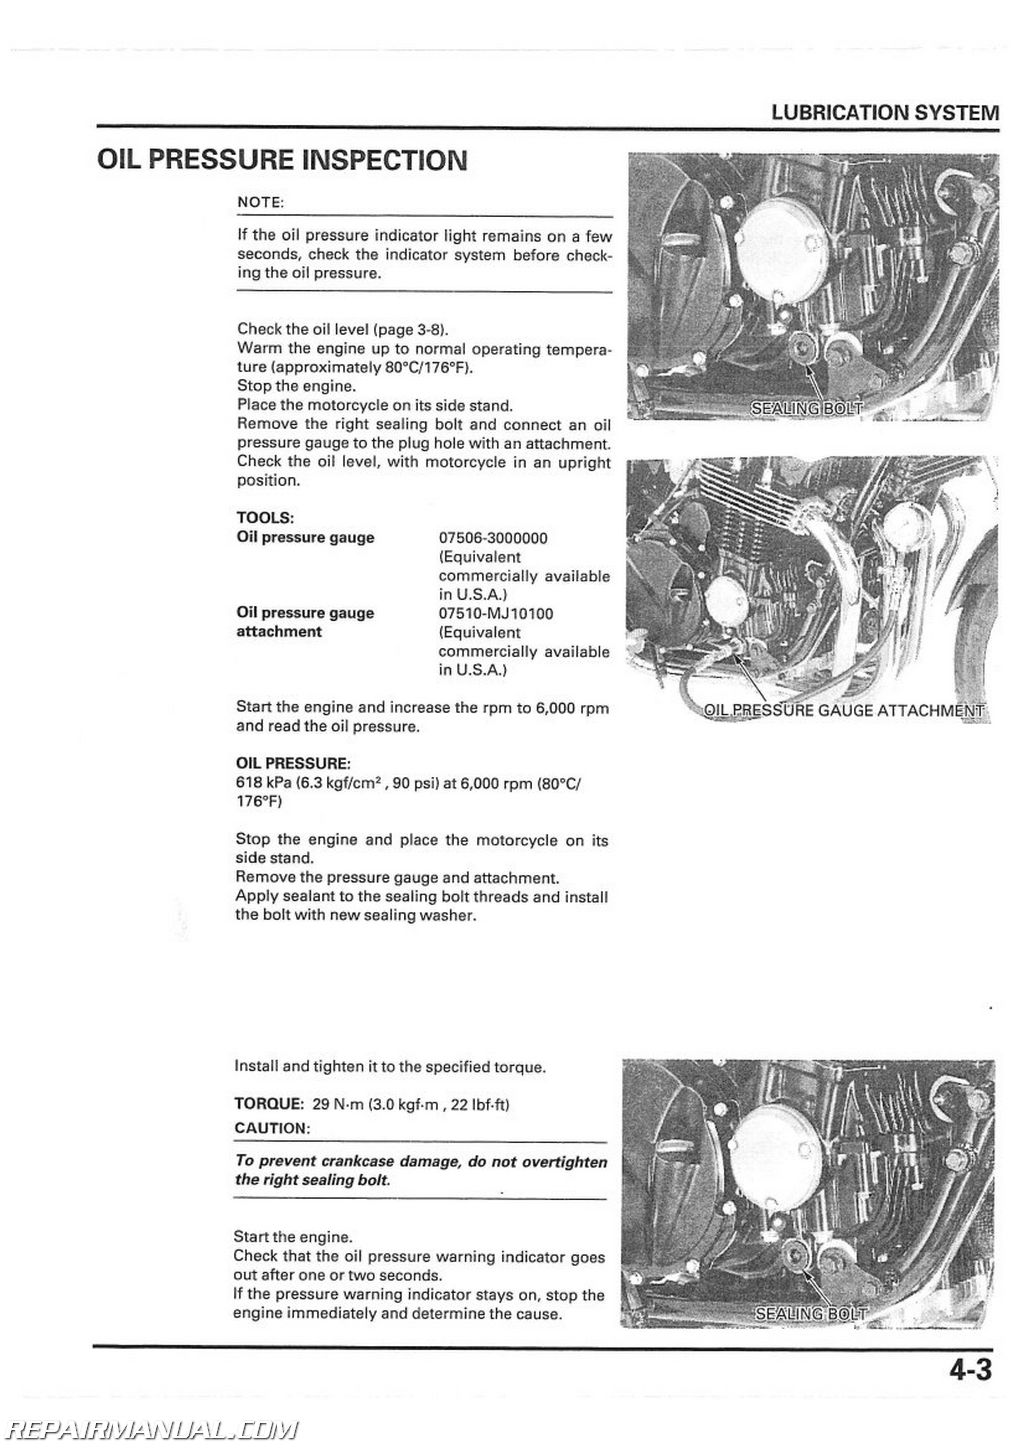 2000 2003 honda cb750 nighthawk motorcycle service manual rh repairmanual com